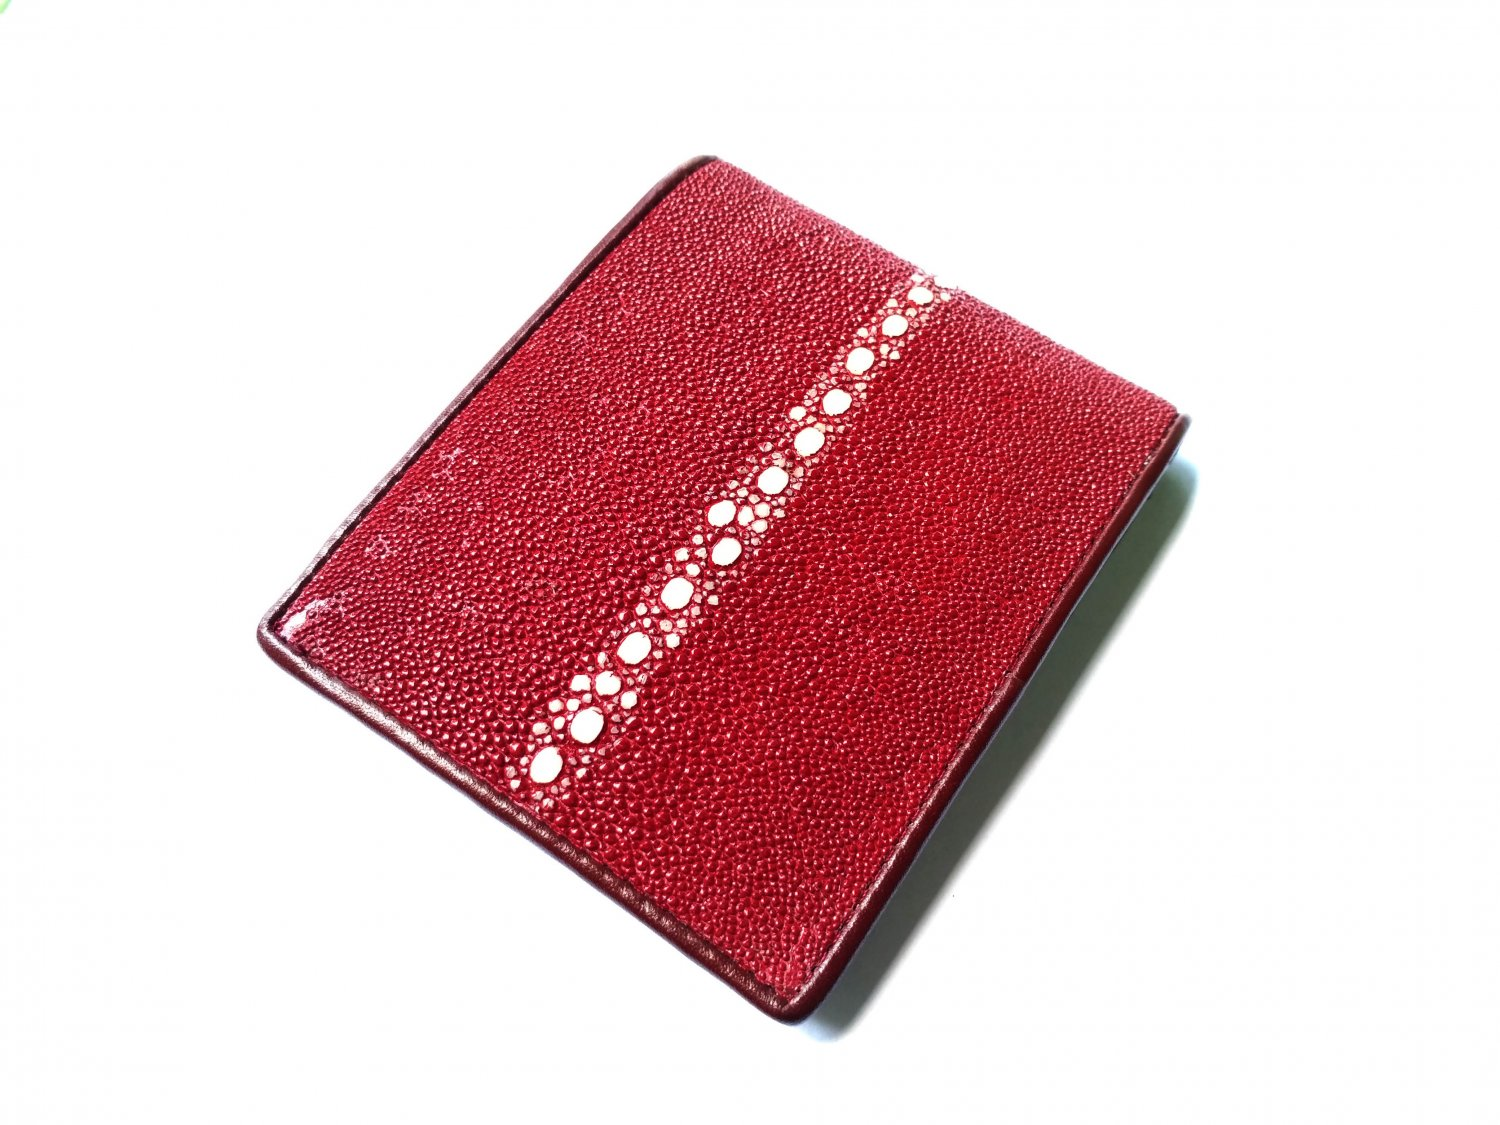 Real Leather Wallet For Men Stingray Skin Wallet Maroon Red Bifold Wallet